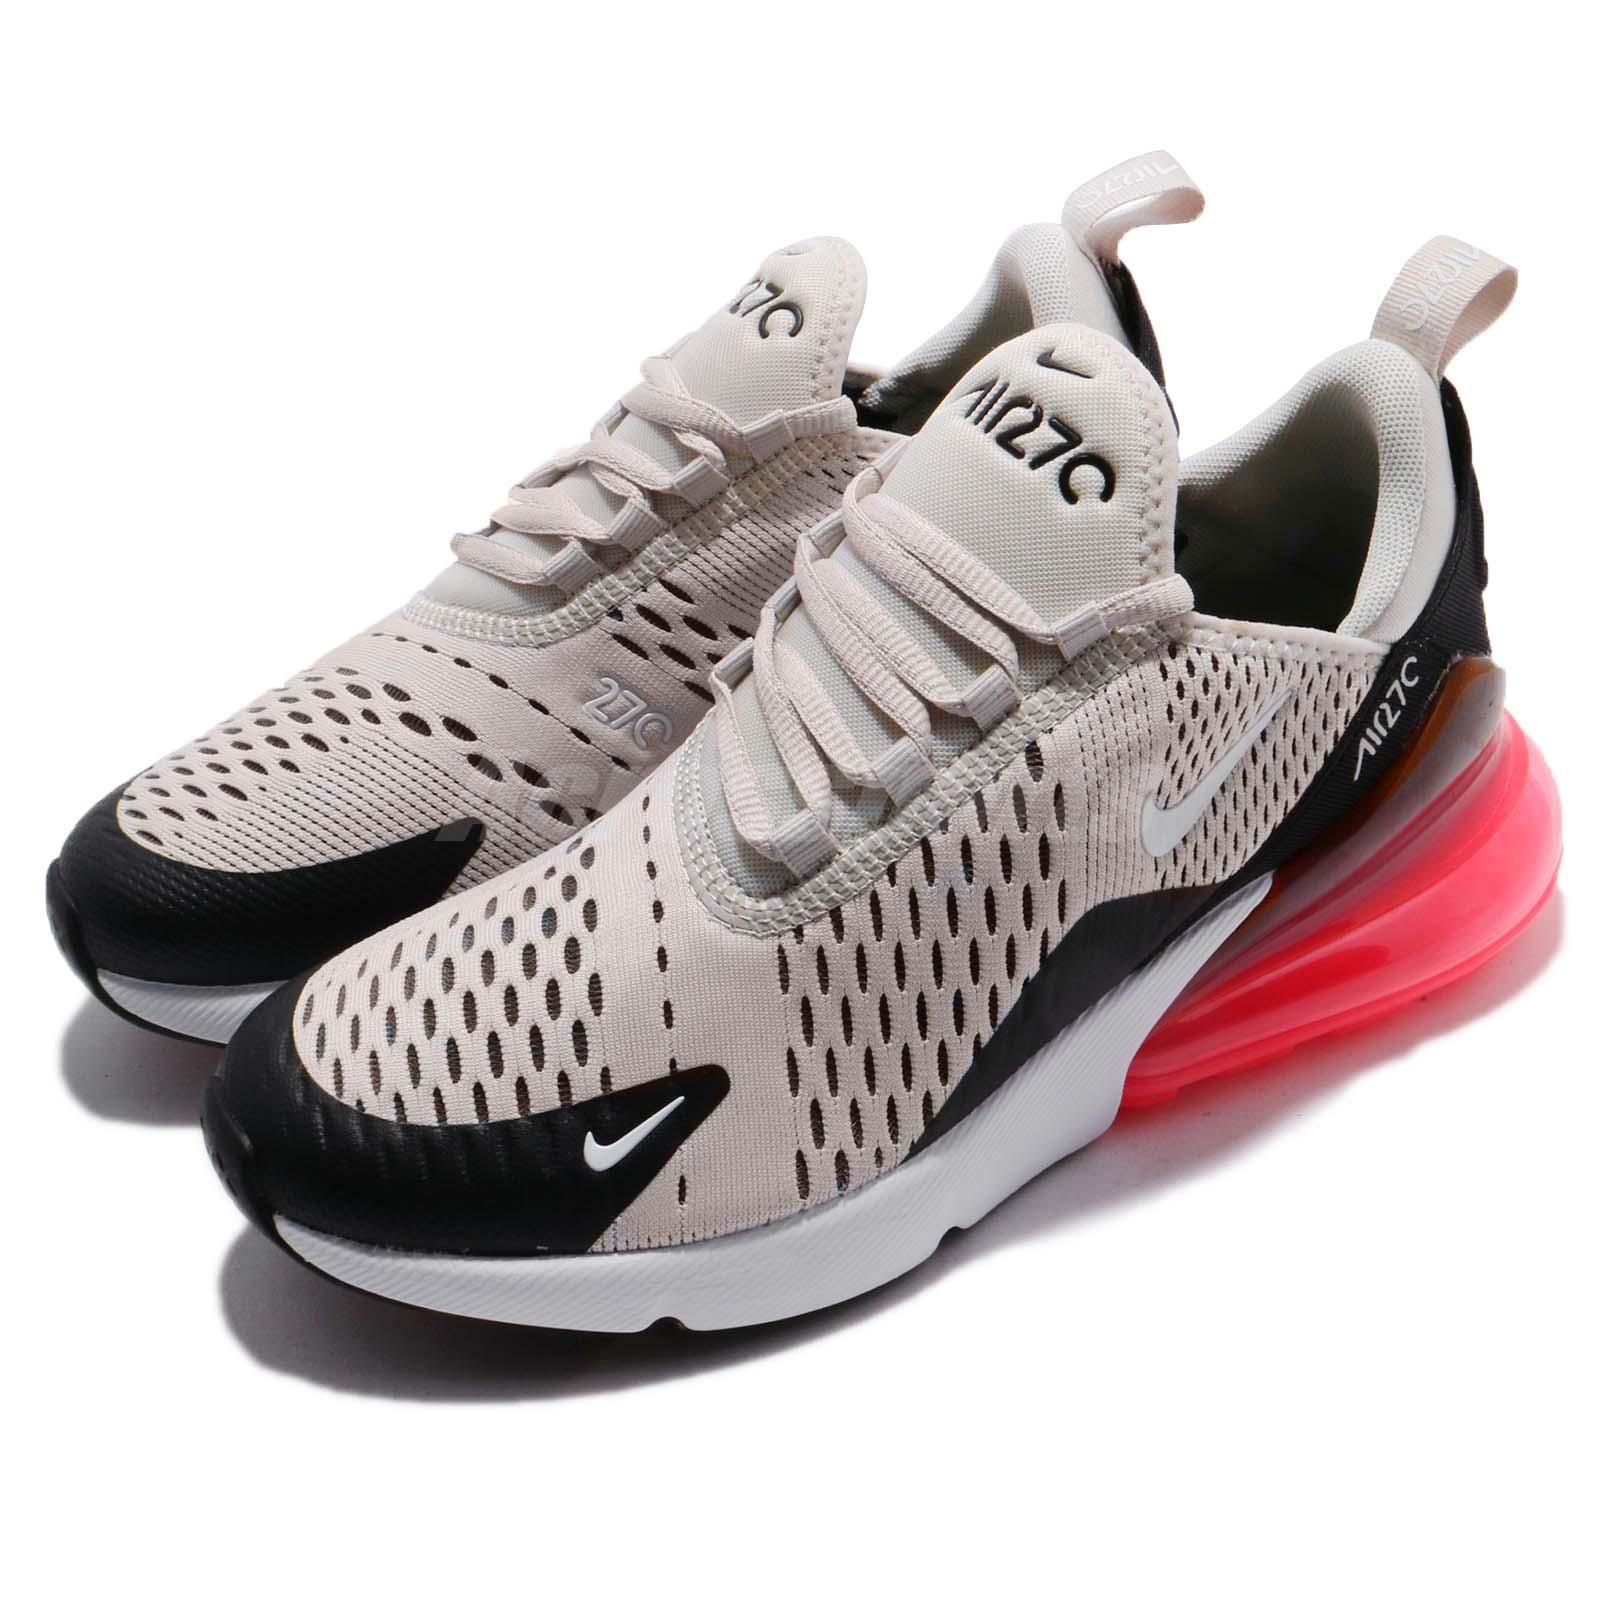 Nike Air Max 270 (GS) - 943345-002 - Size 7Y -